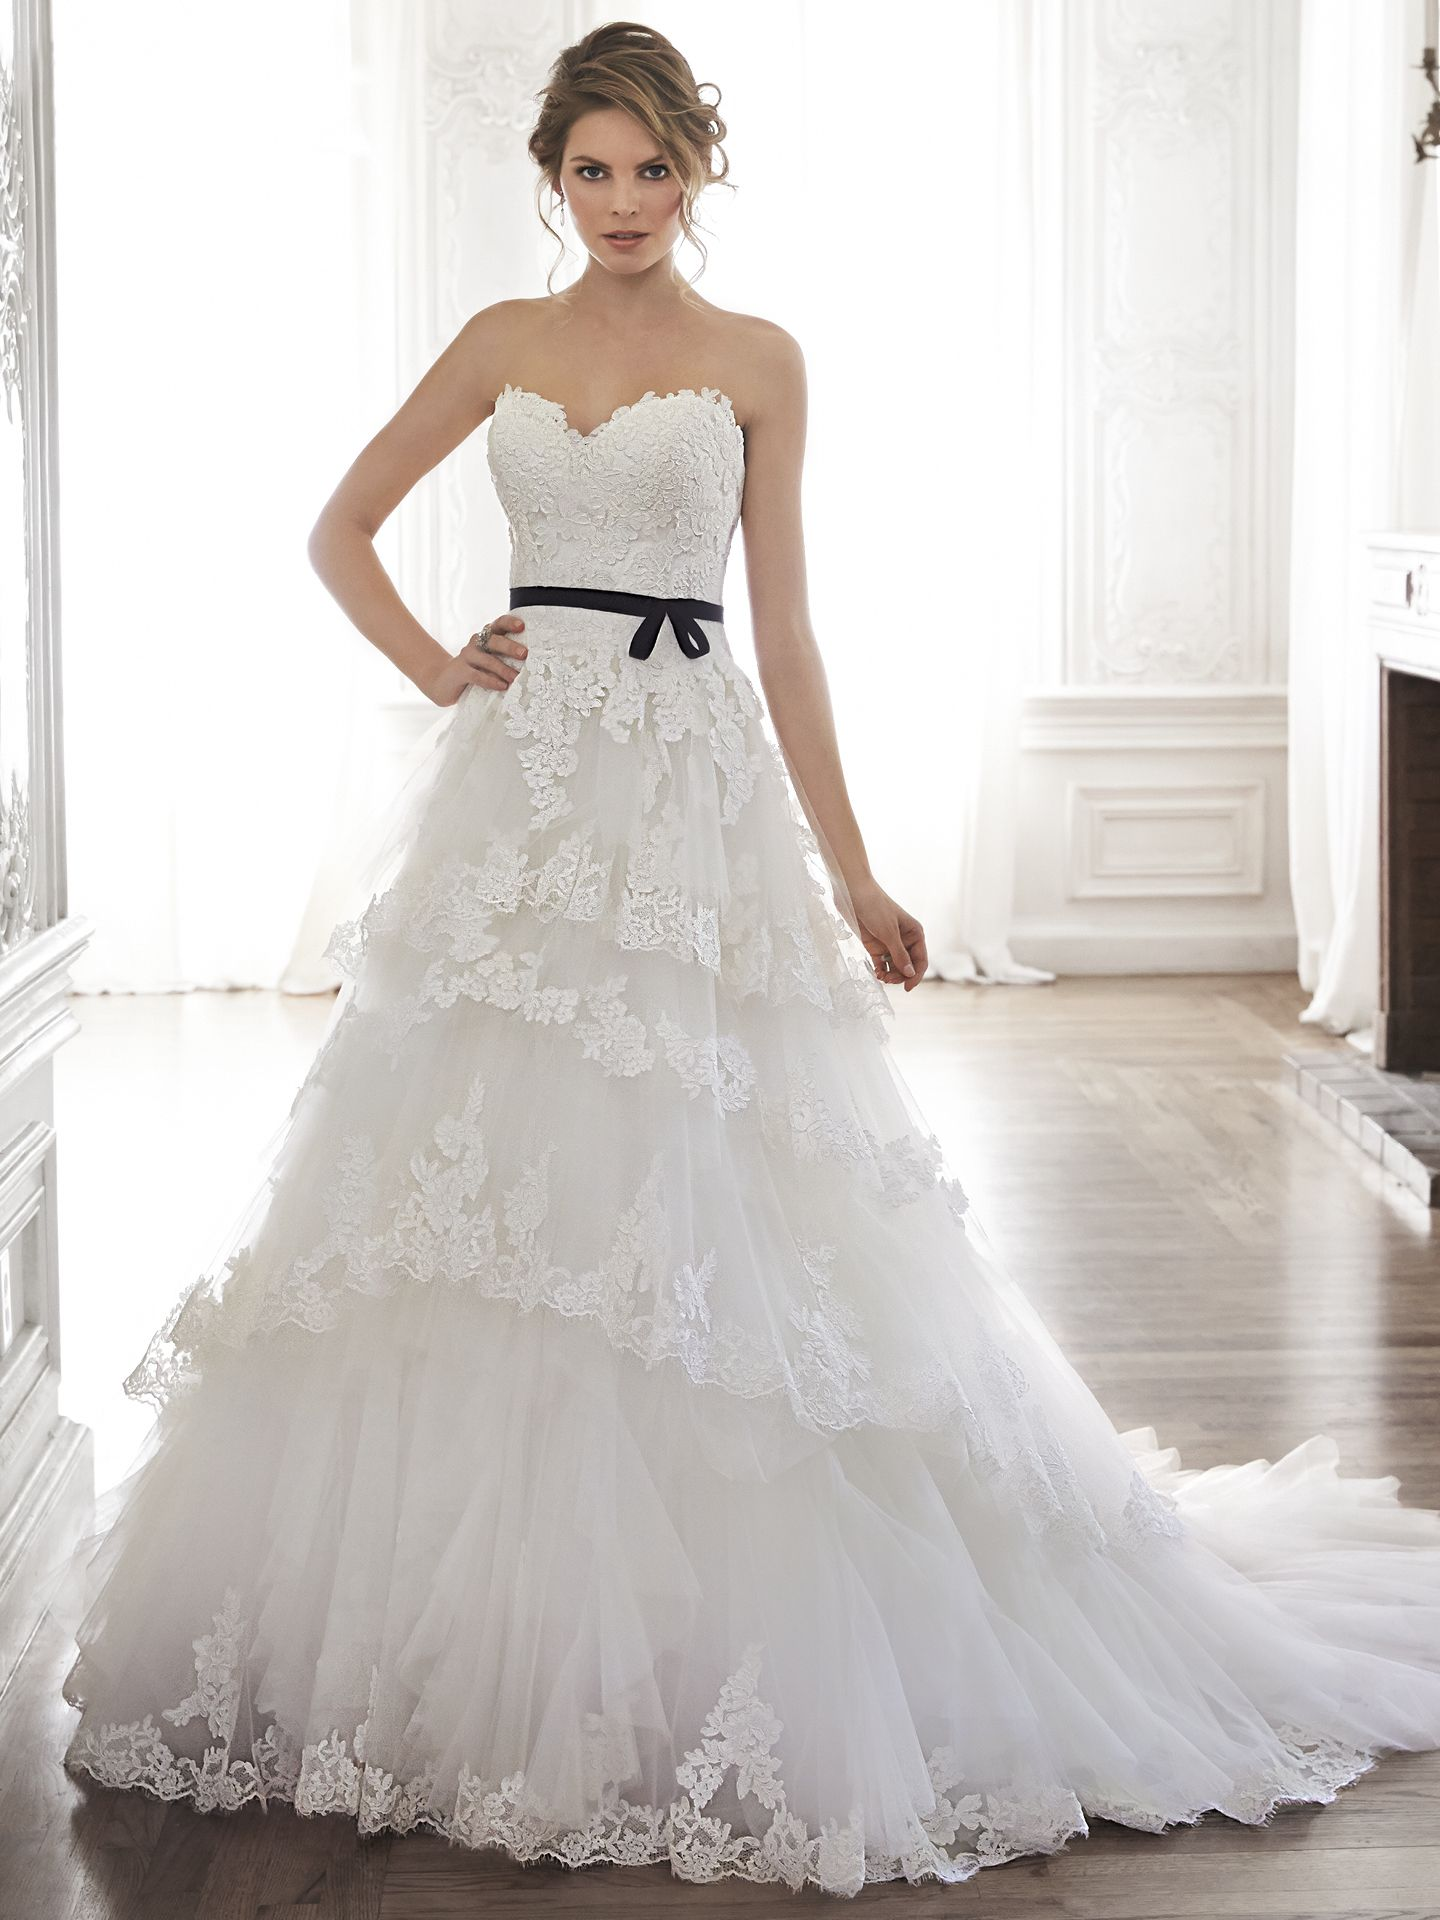 Lace ball gown wedding dresses  Maggie Sottero Wedding Dresses  Maggie sottero Lace ball gowns and